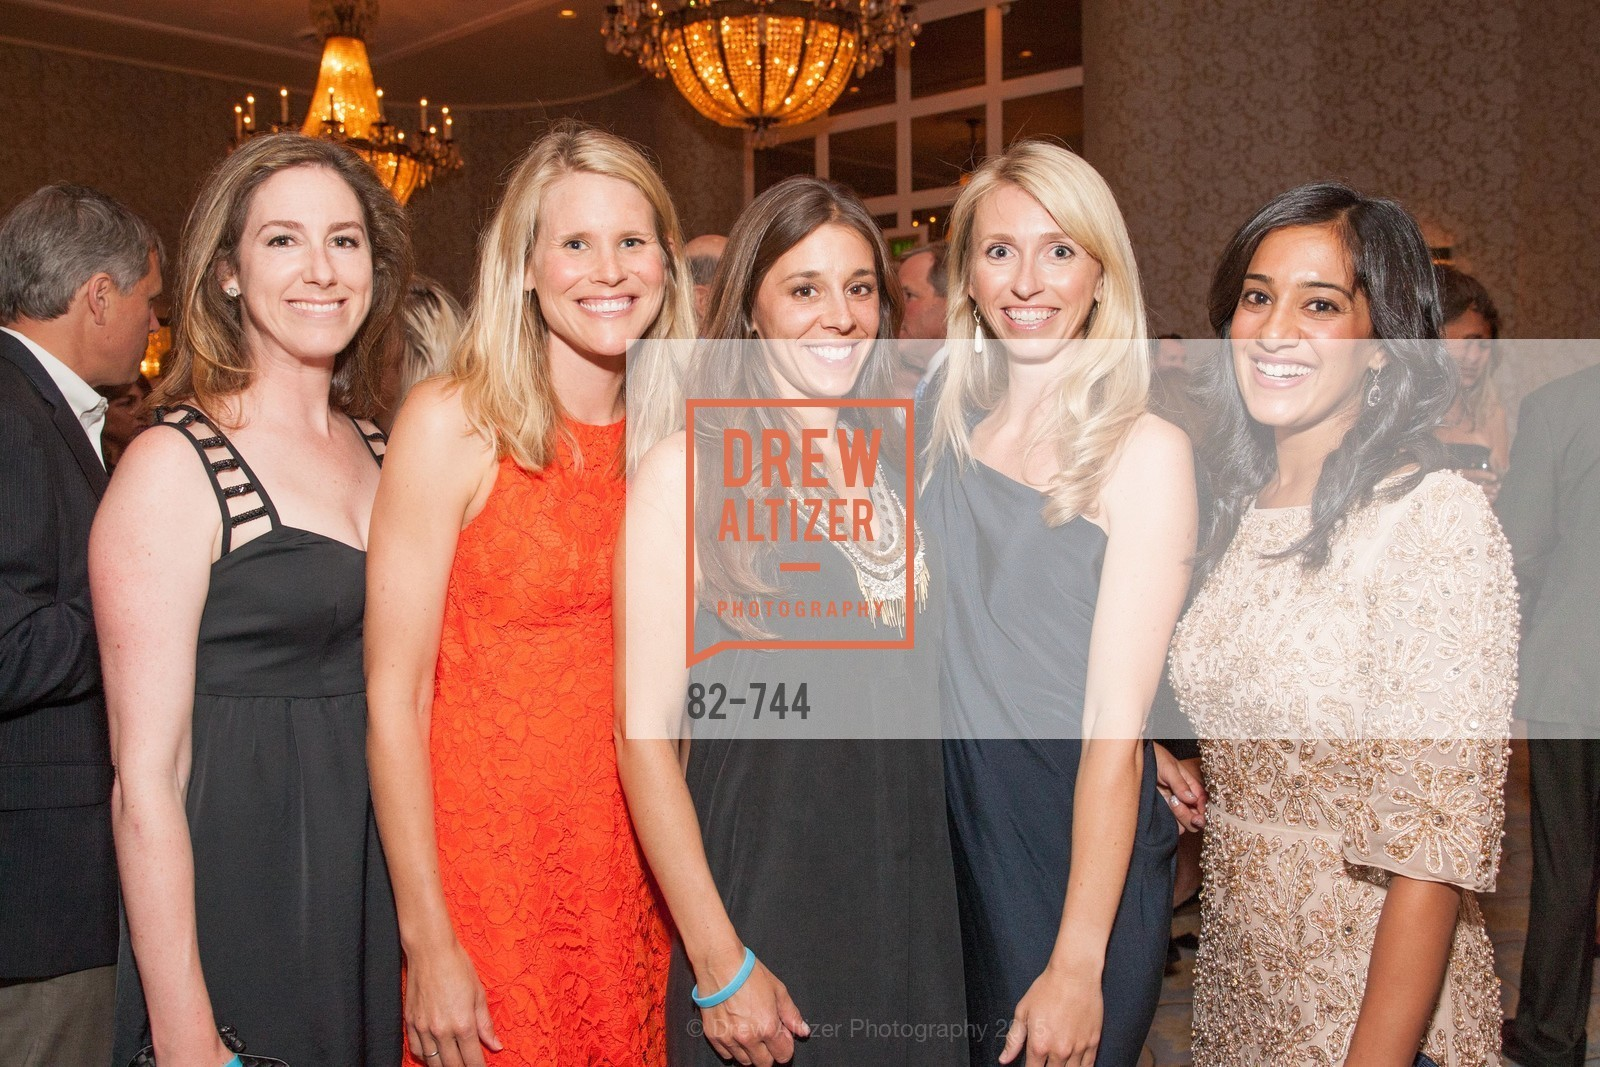 Chloe Sugarman, Lauren Weiss, Randi Kelly, Melissa Reyna, Sapna Boze, Celebration of Launch of SHYP in Los Angeles, US, May 21st, 2015,Drew Altizer, Drew Altizer Photography, full-service agency, private events, San Francisco photographer, photographer california